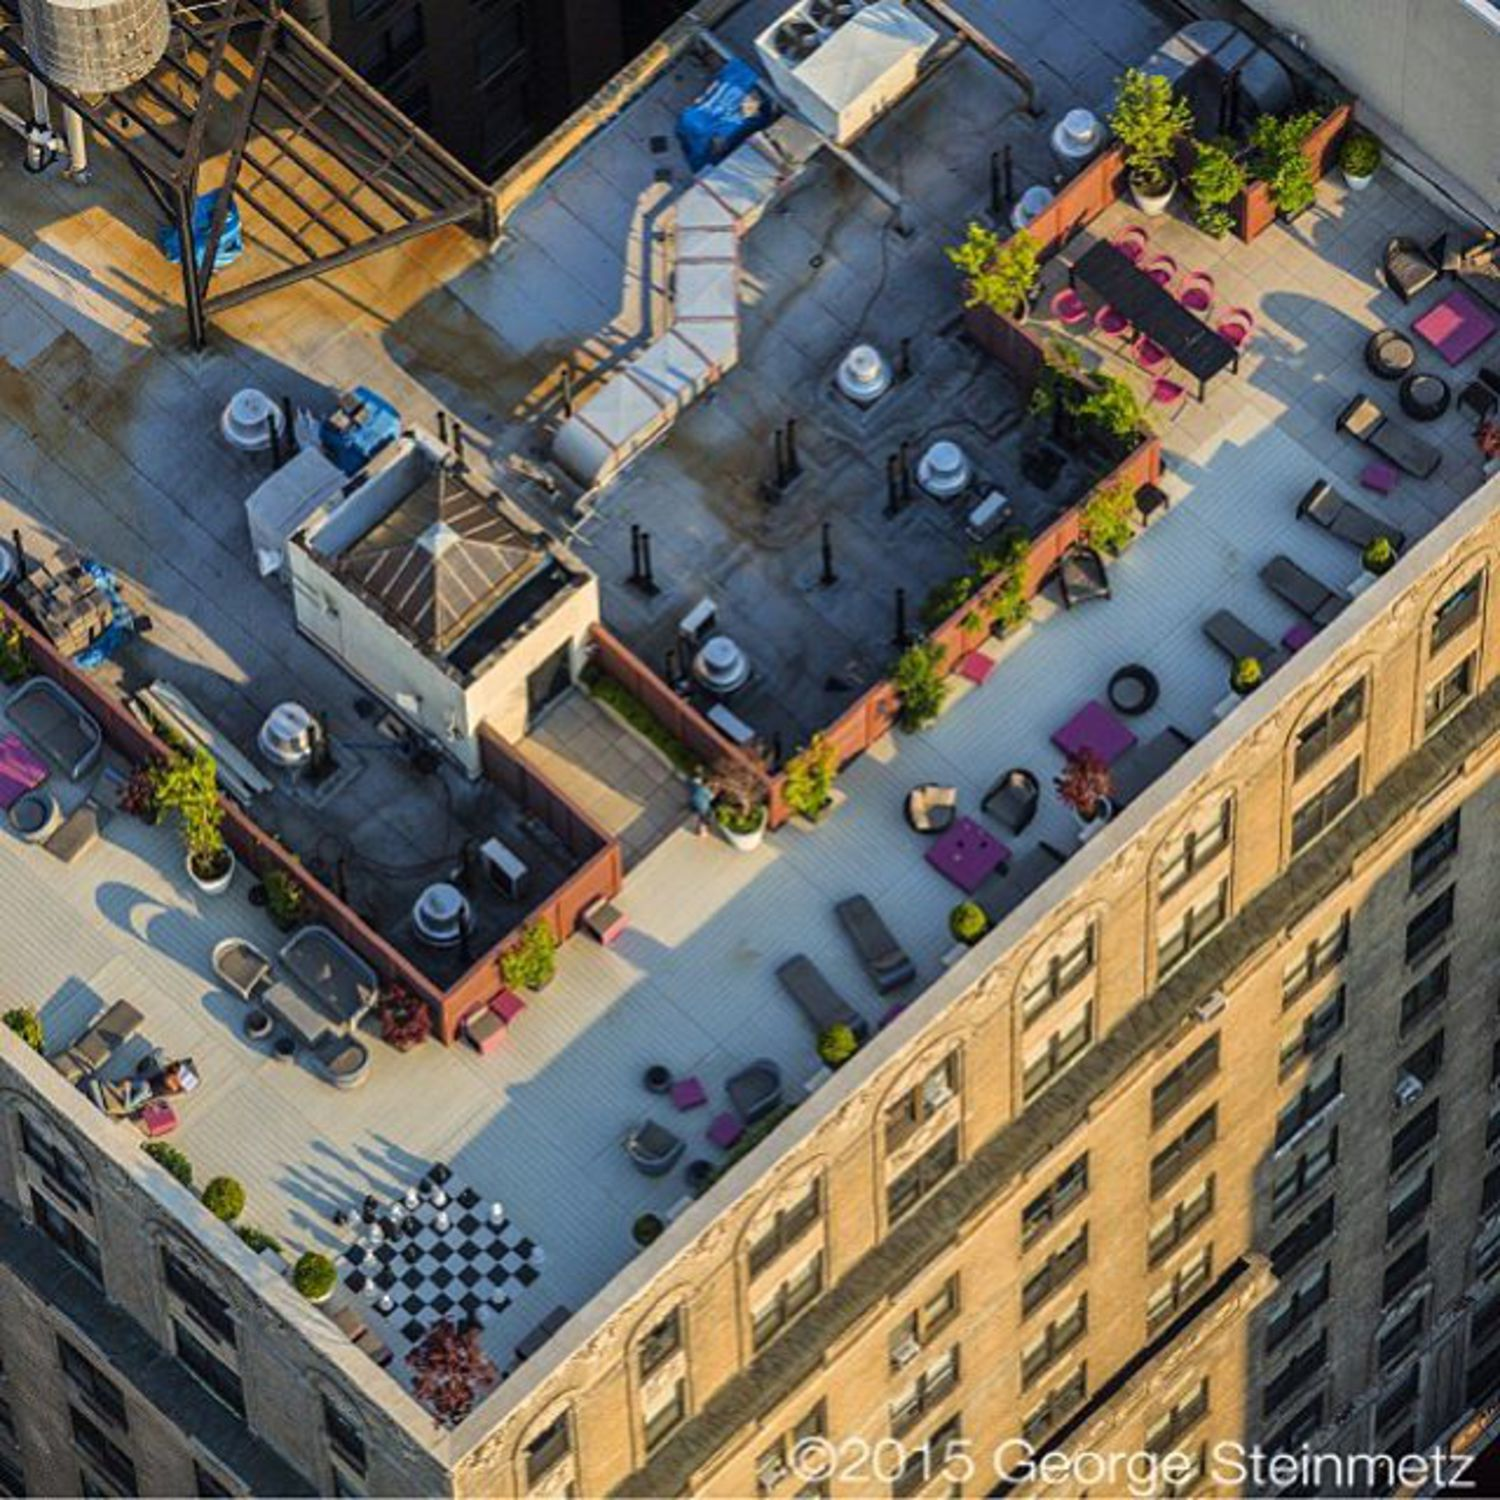 Photograph by George Steinmetz @geosteinmetz / @thephotosociety  Chess Manhattan style … on the rooftop at #TheGreystone, 2454 Broadway, in #NewYorkCity. The building was originally constructed in 1923 as a stately hotel and renovated into luxury apartments.